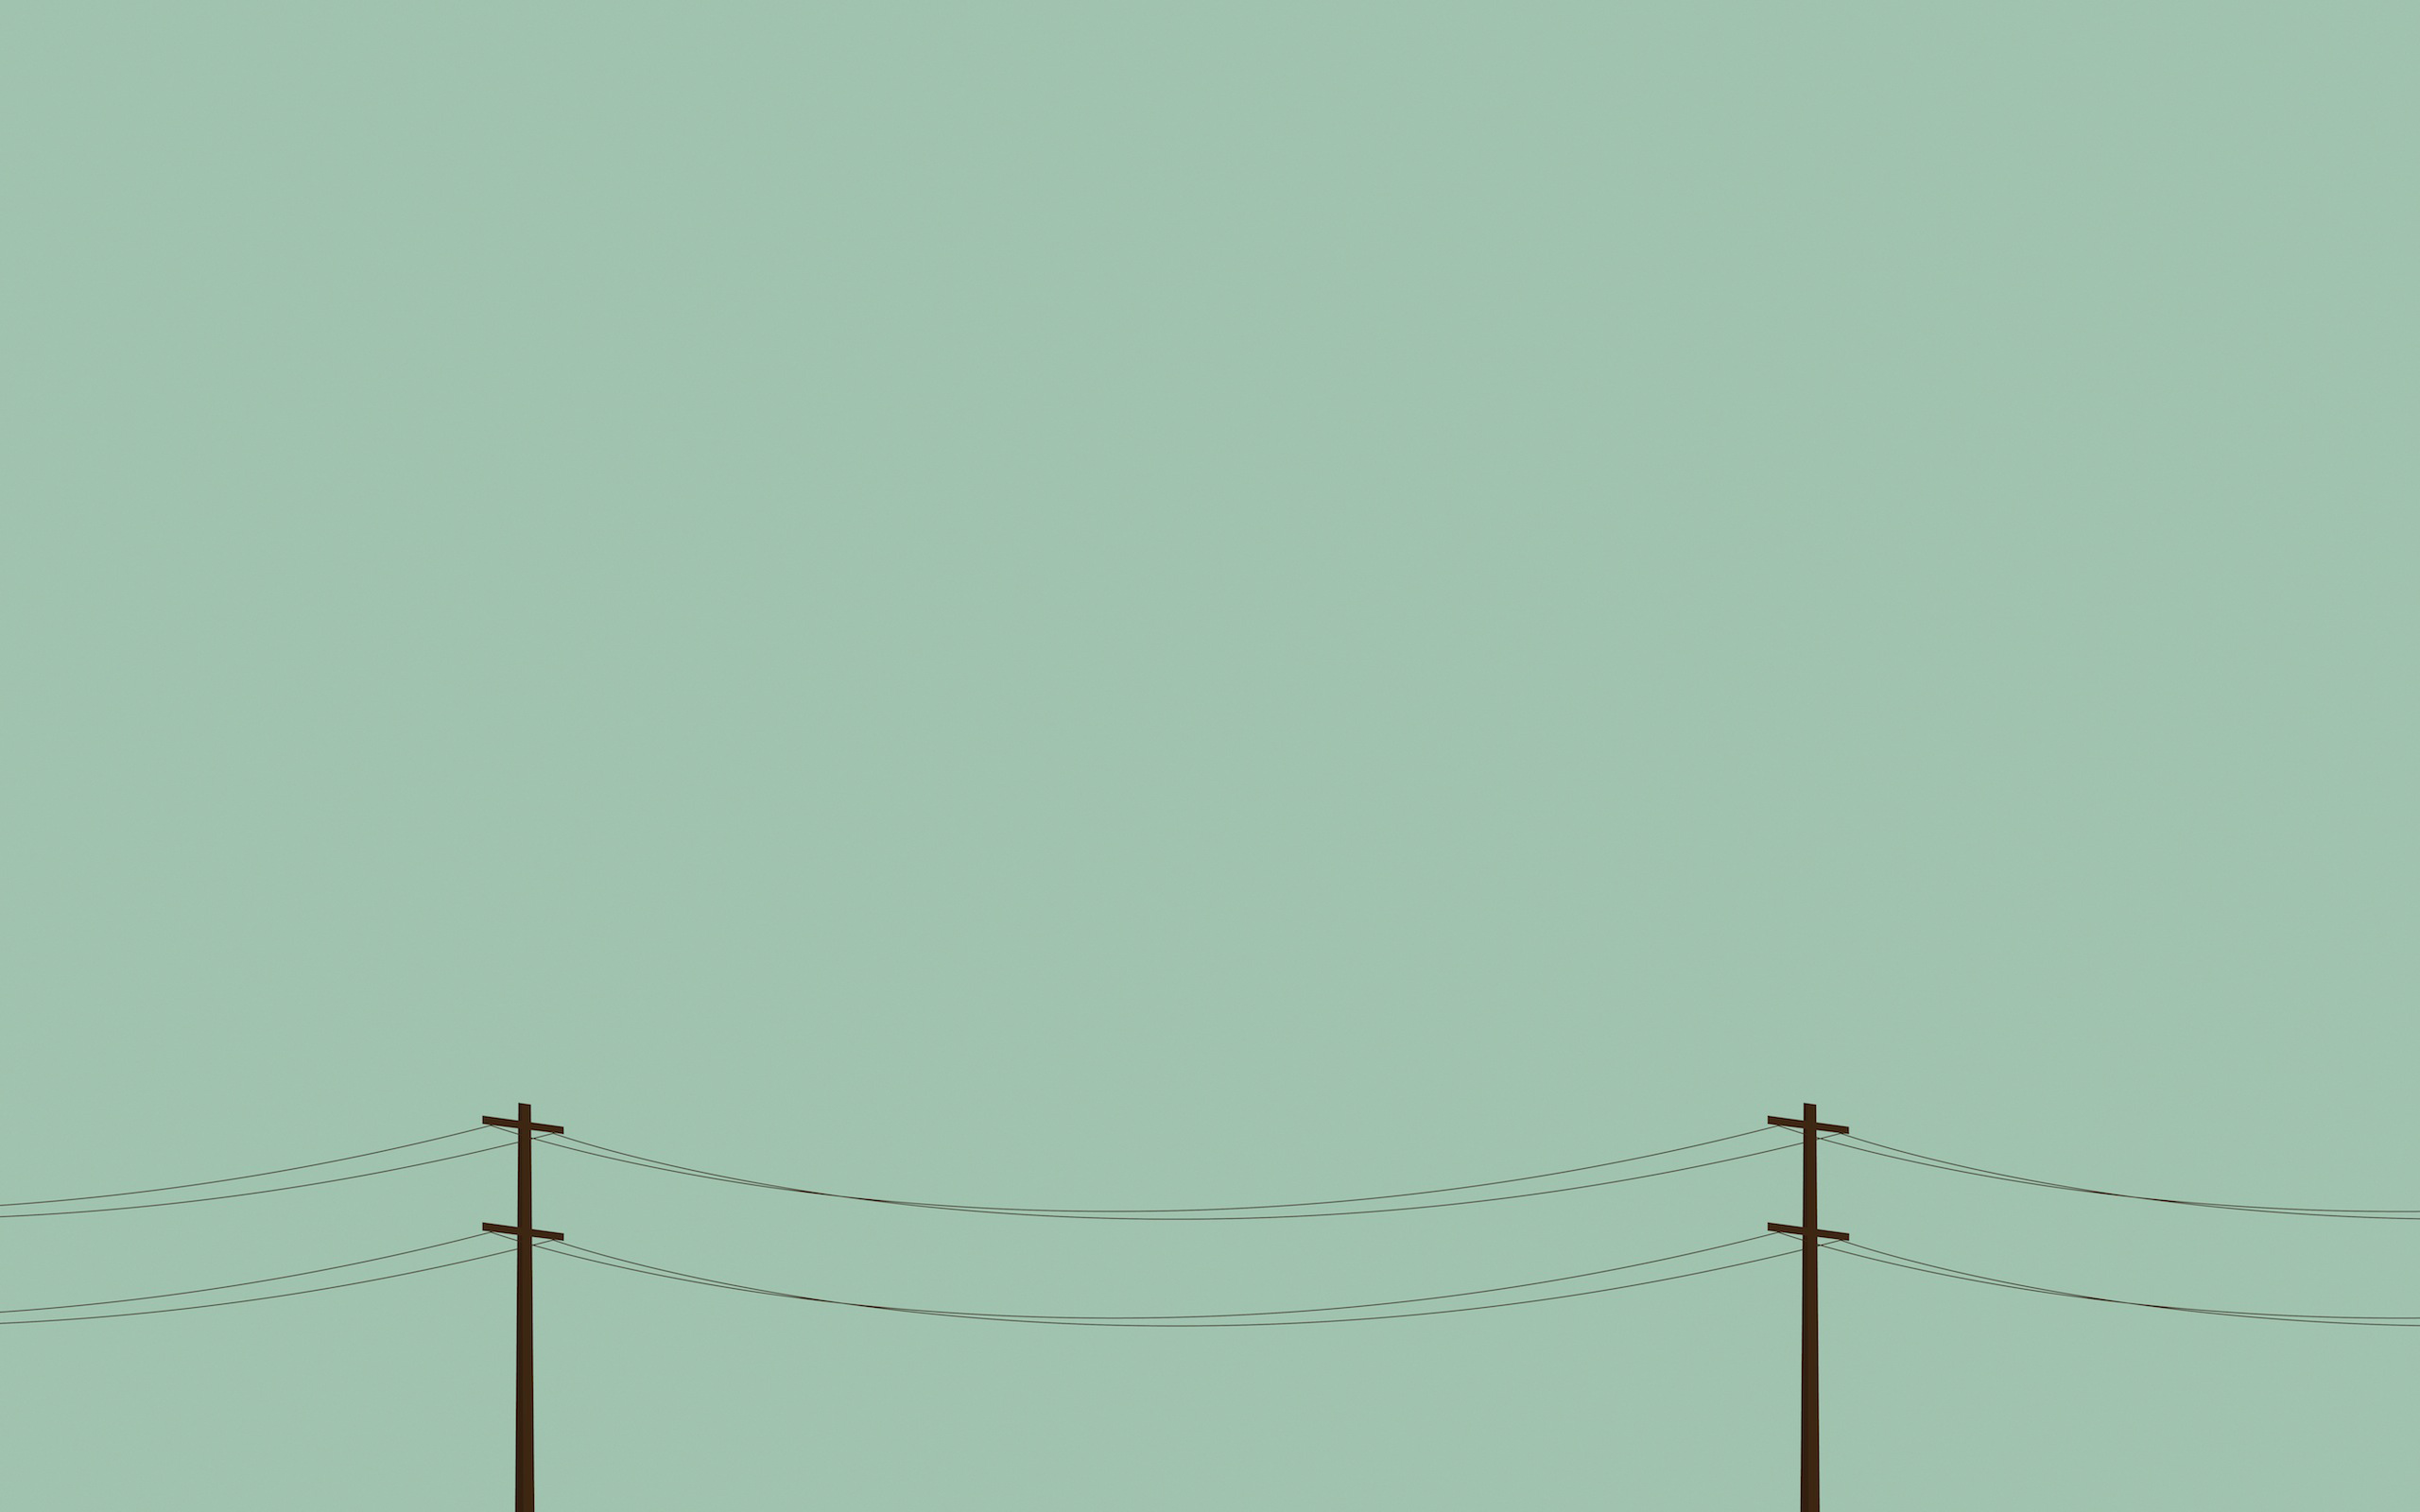 Best Minimalist 2560x1600 Wallpaper by Dustin Reaper